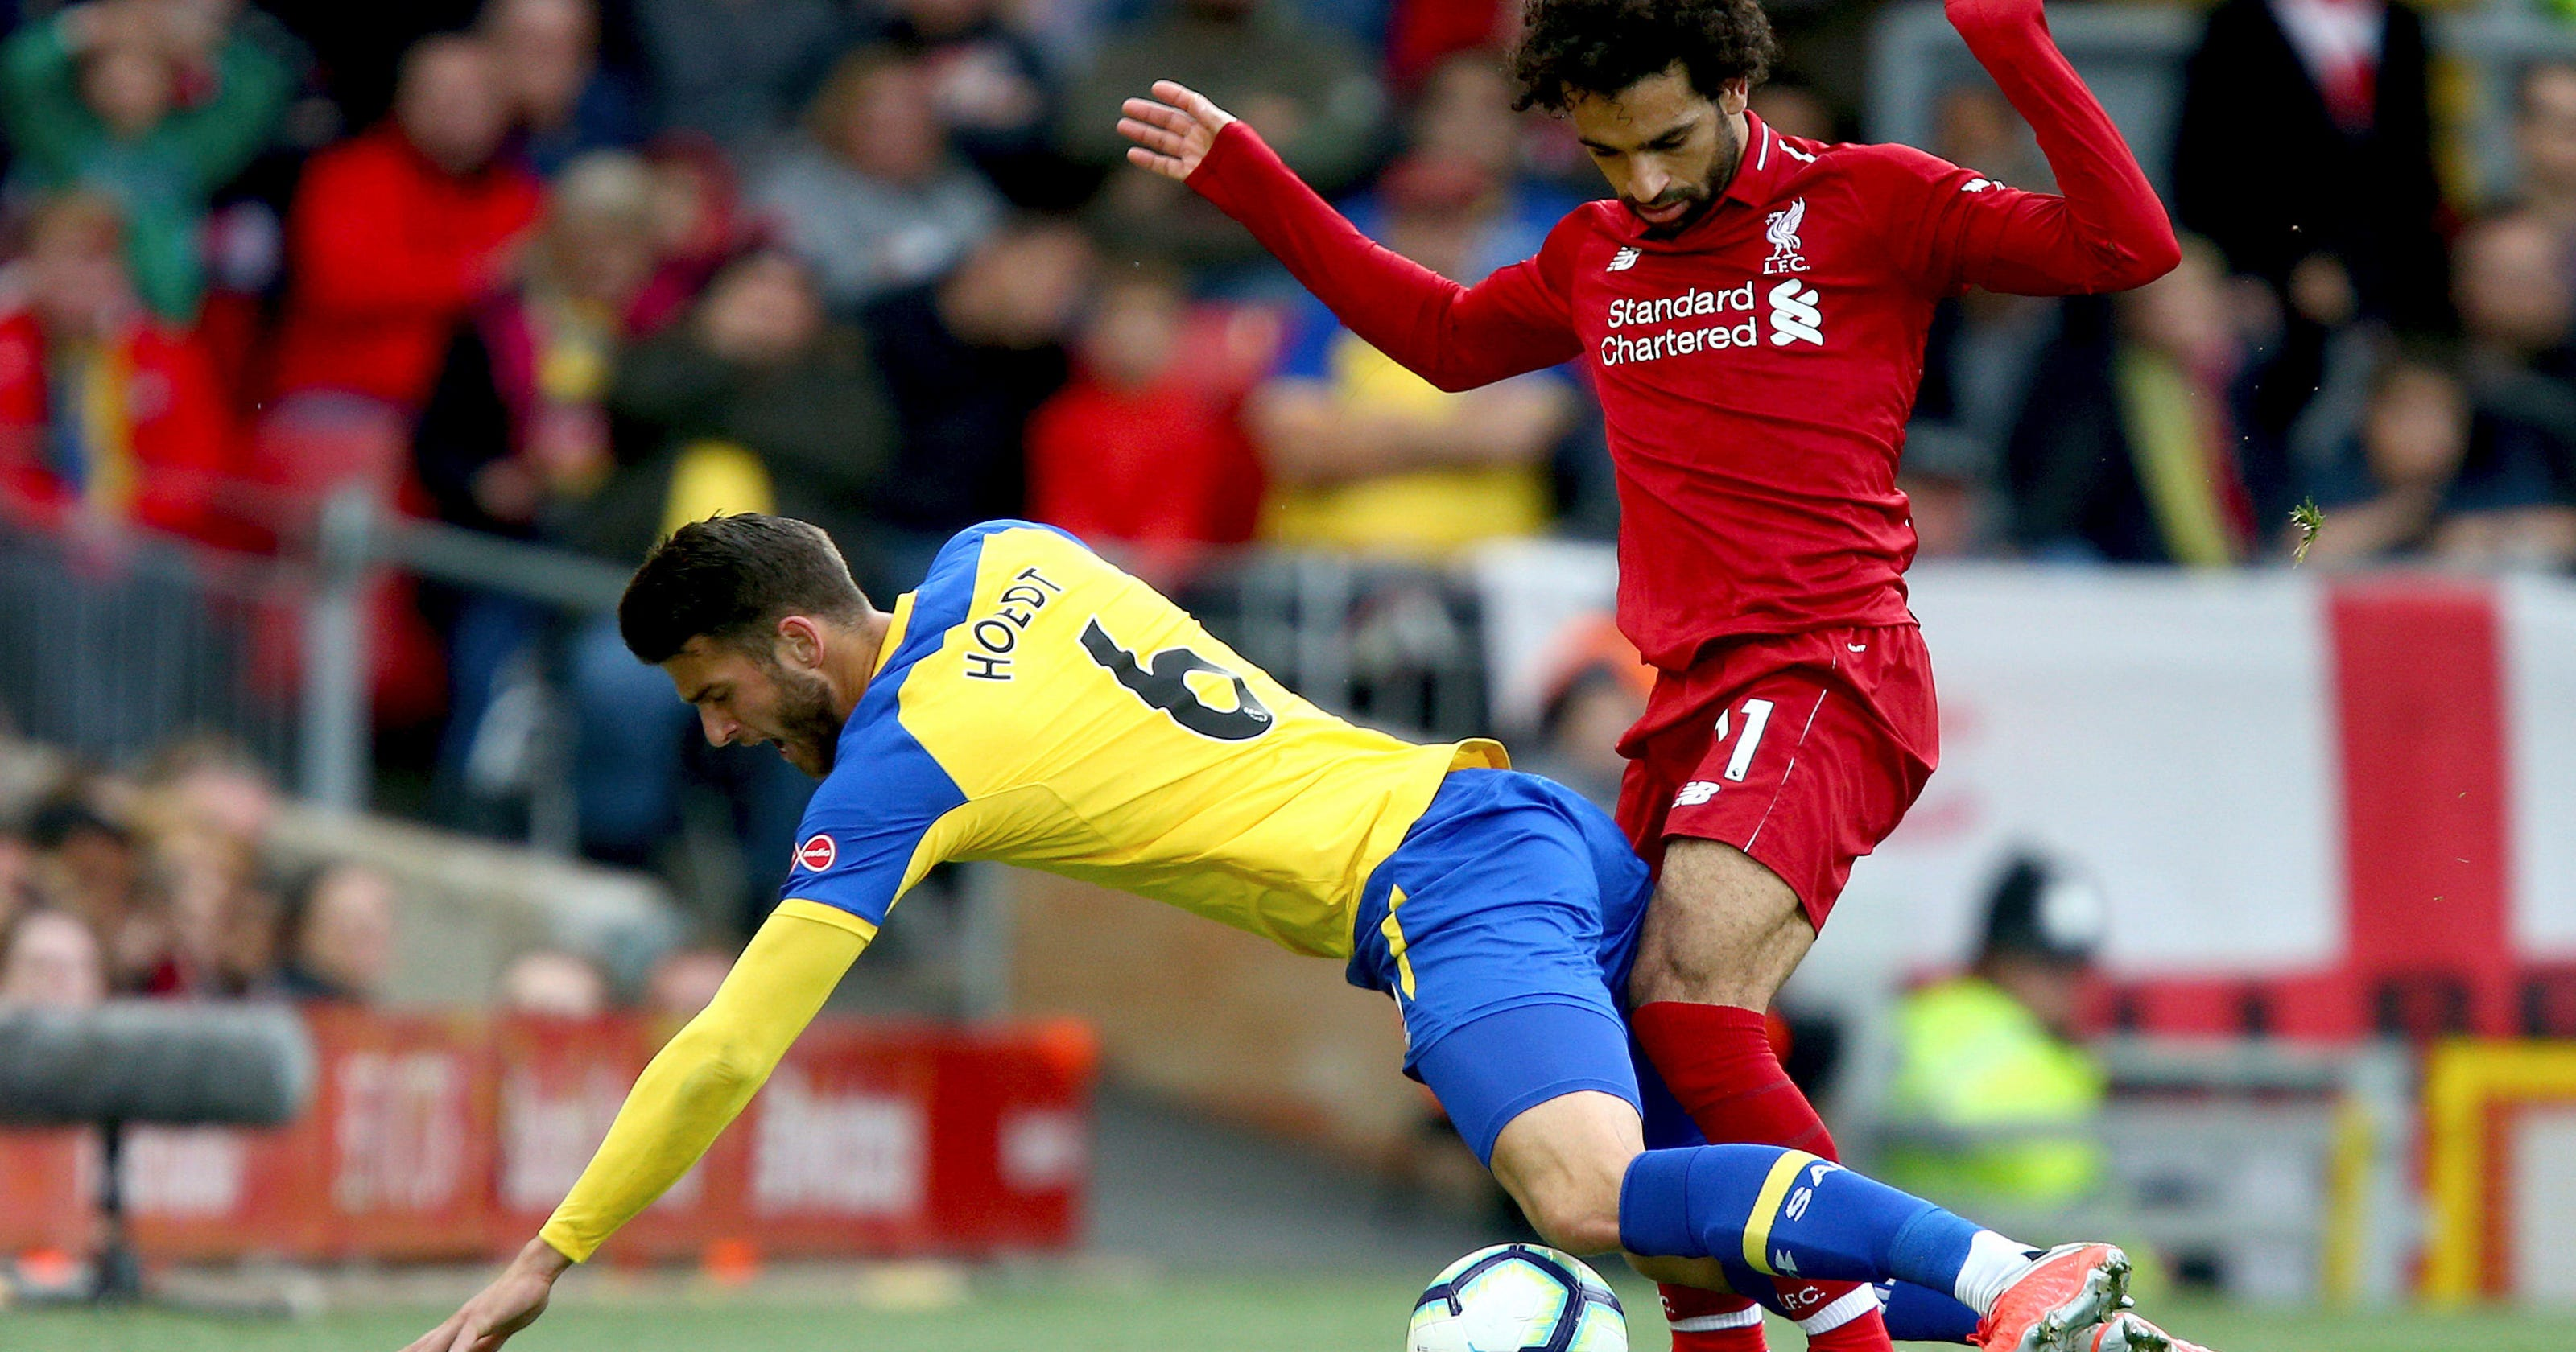 Salah's form leaves Egypt's pundits looking for explanations